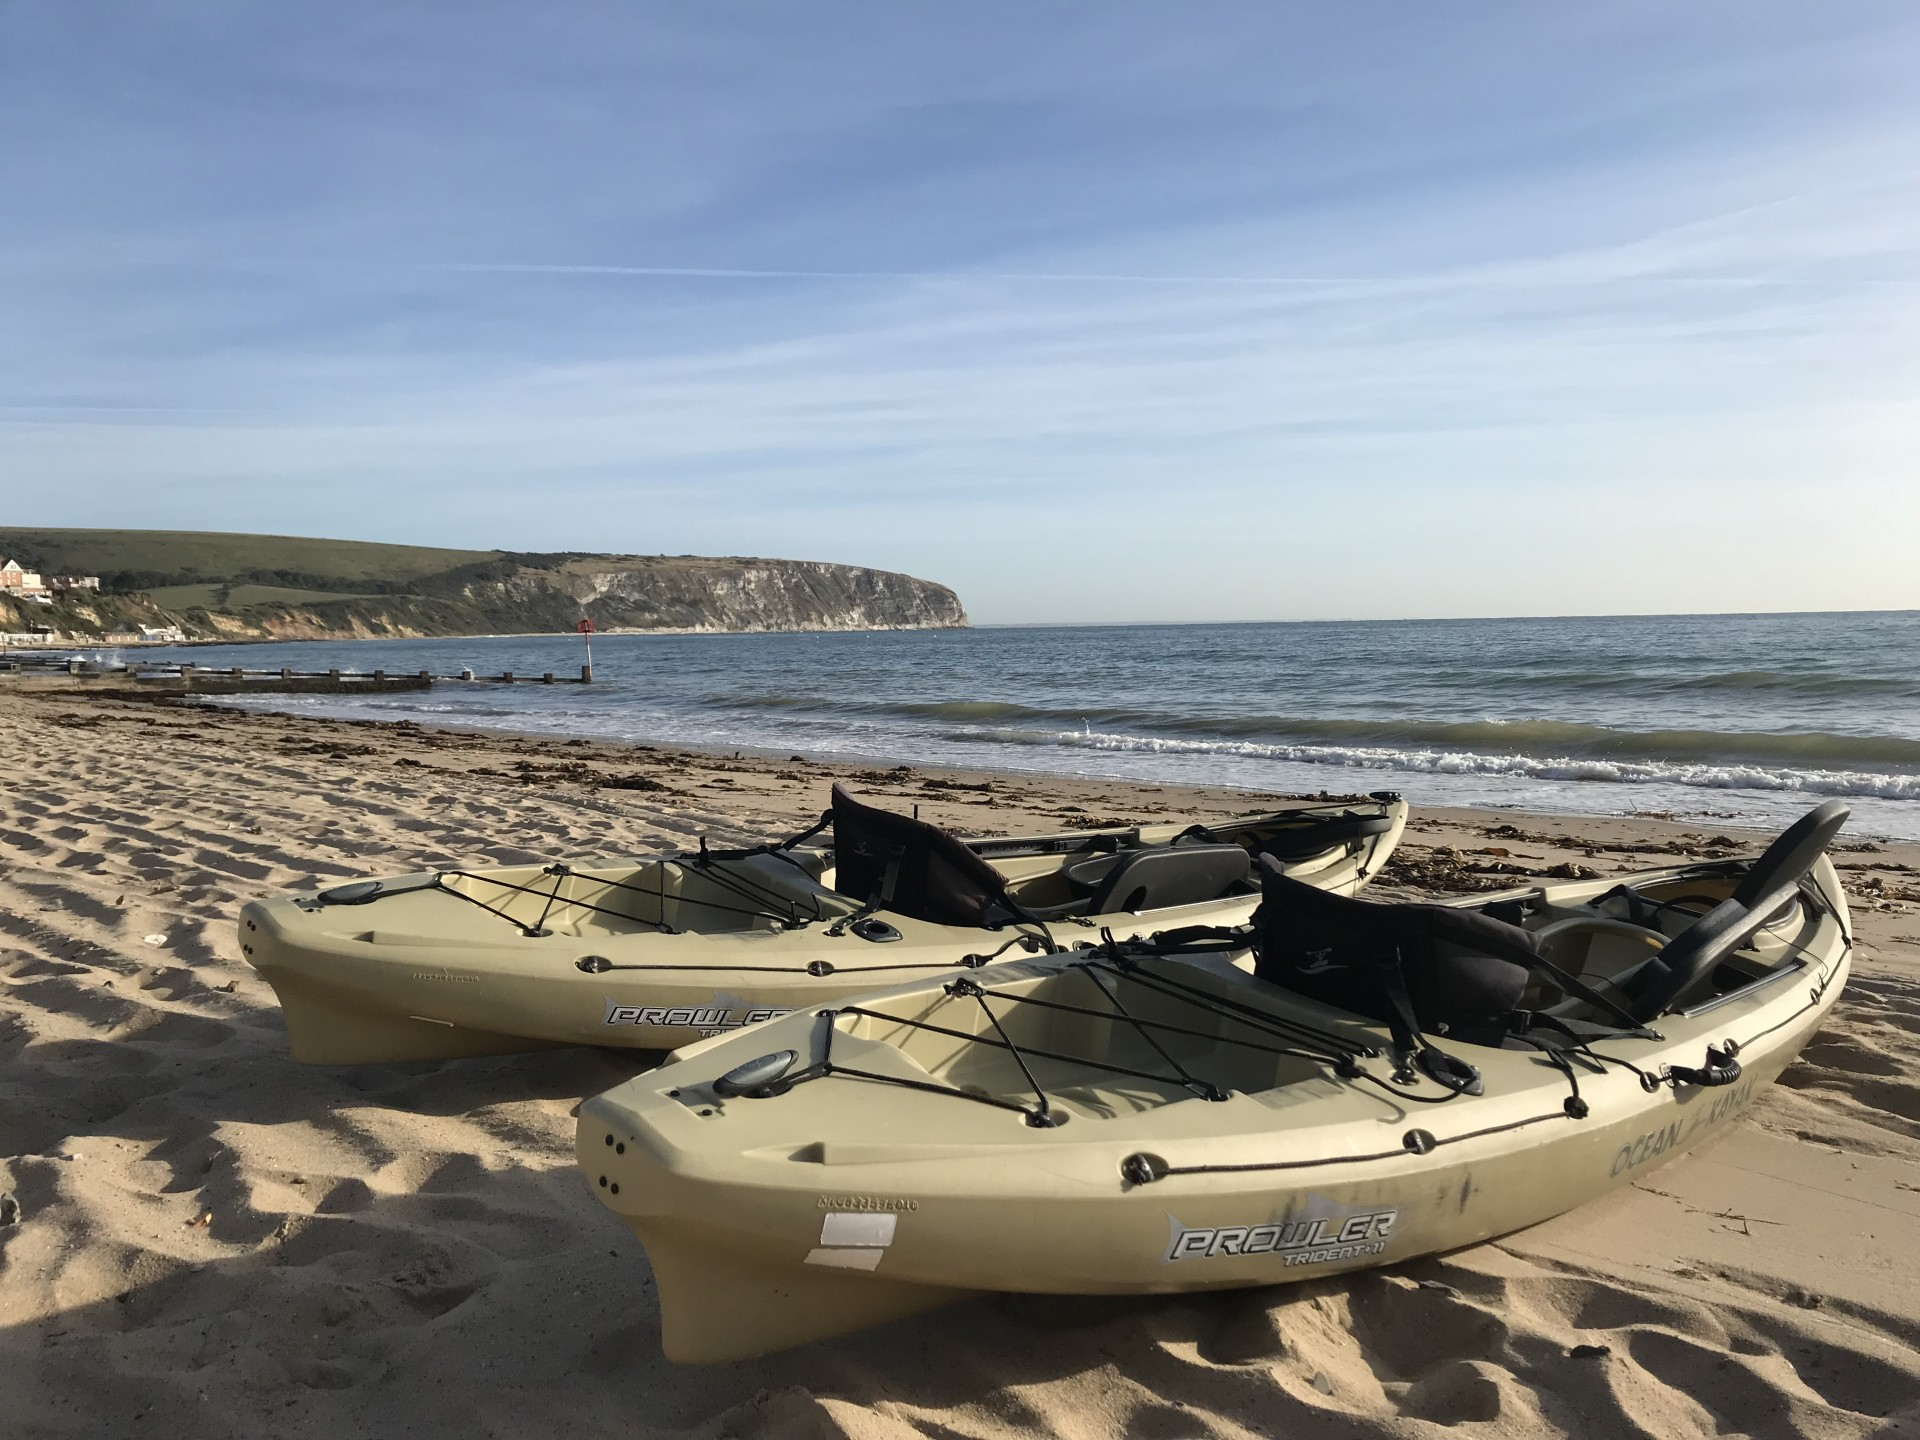 Two Ocean Kayak Prowler sit-on-top kayaks on a sandy beach in Swanage.